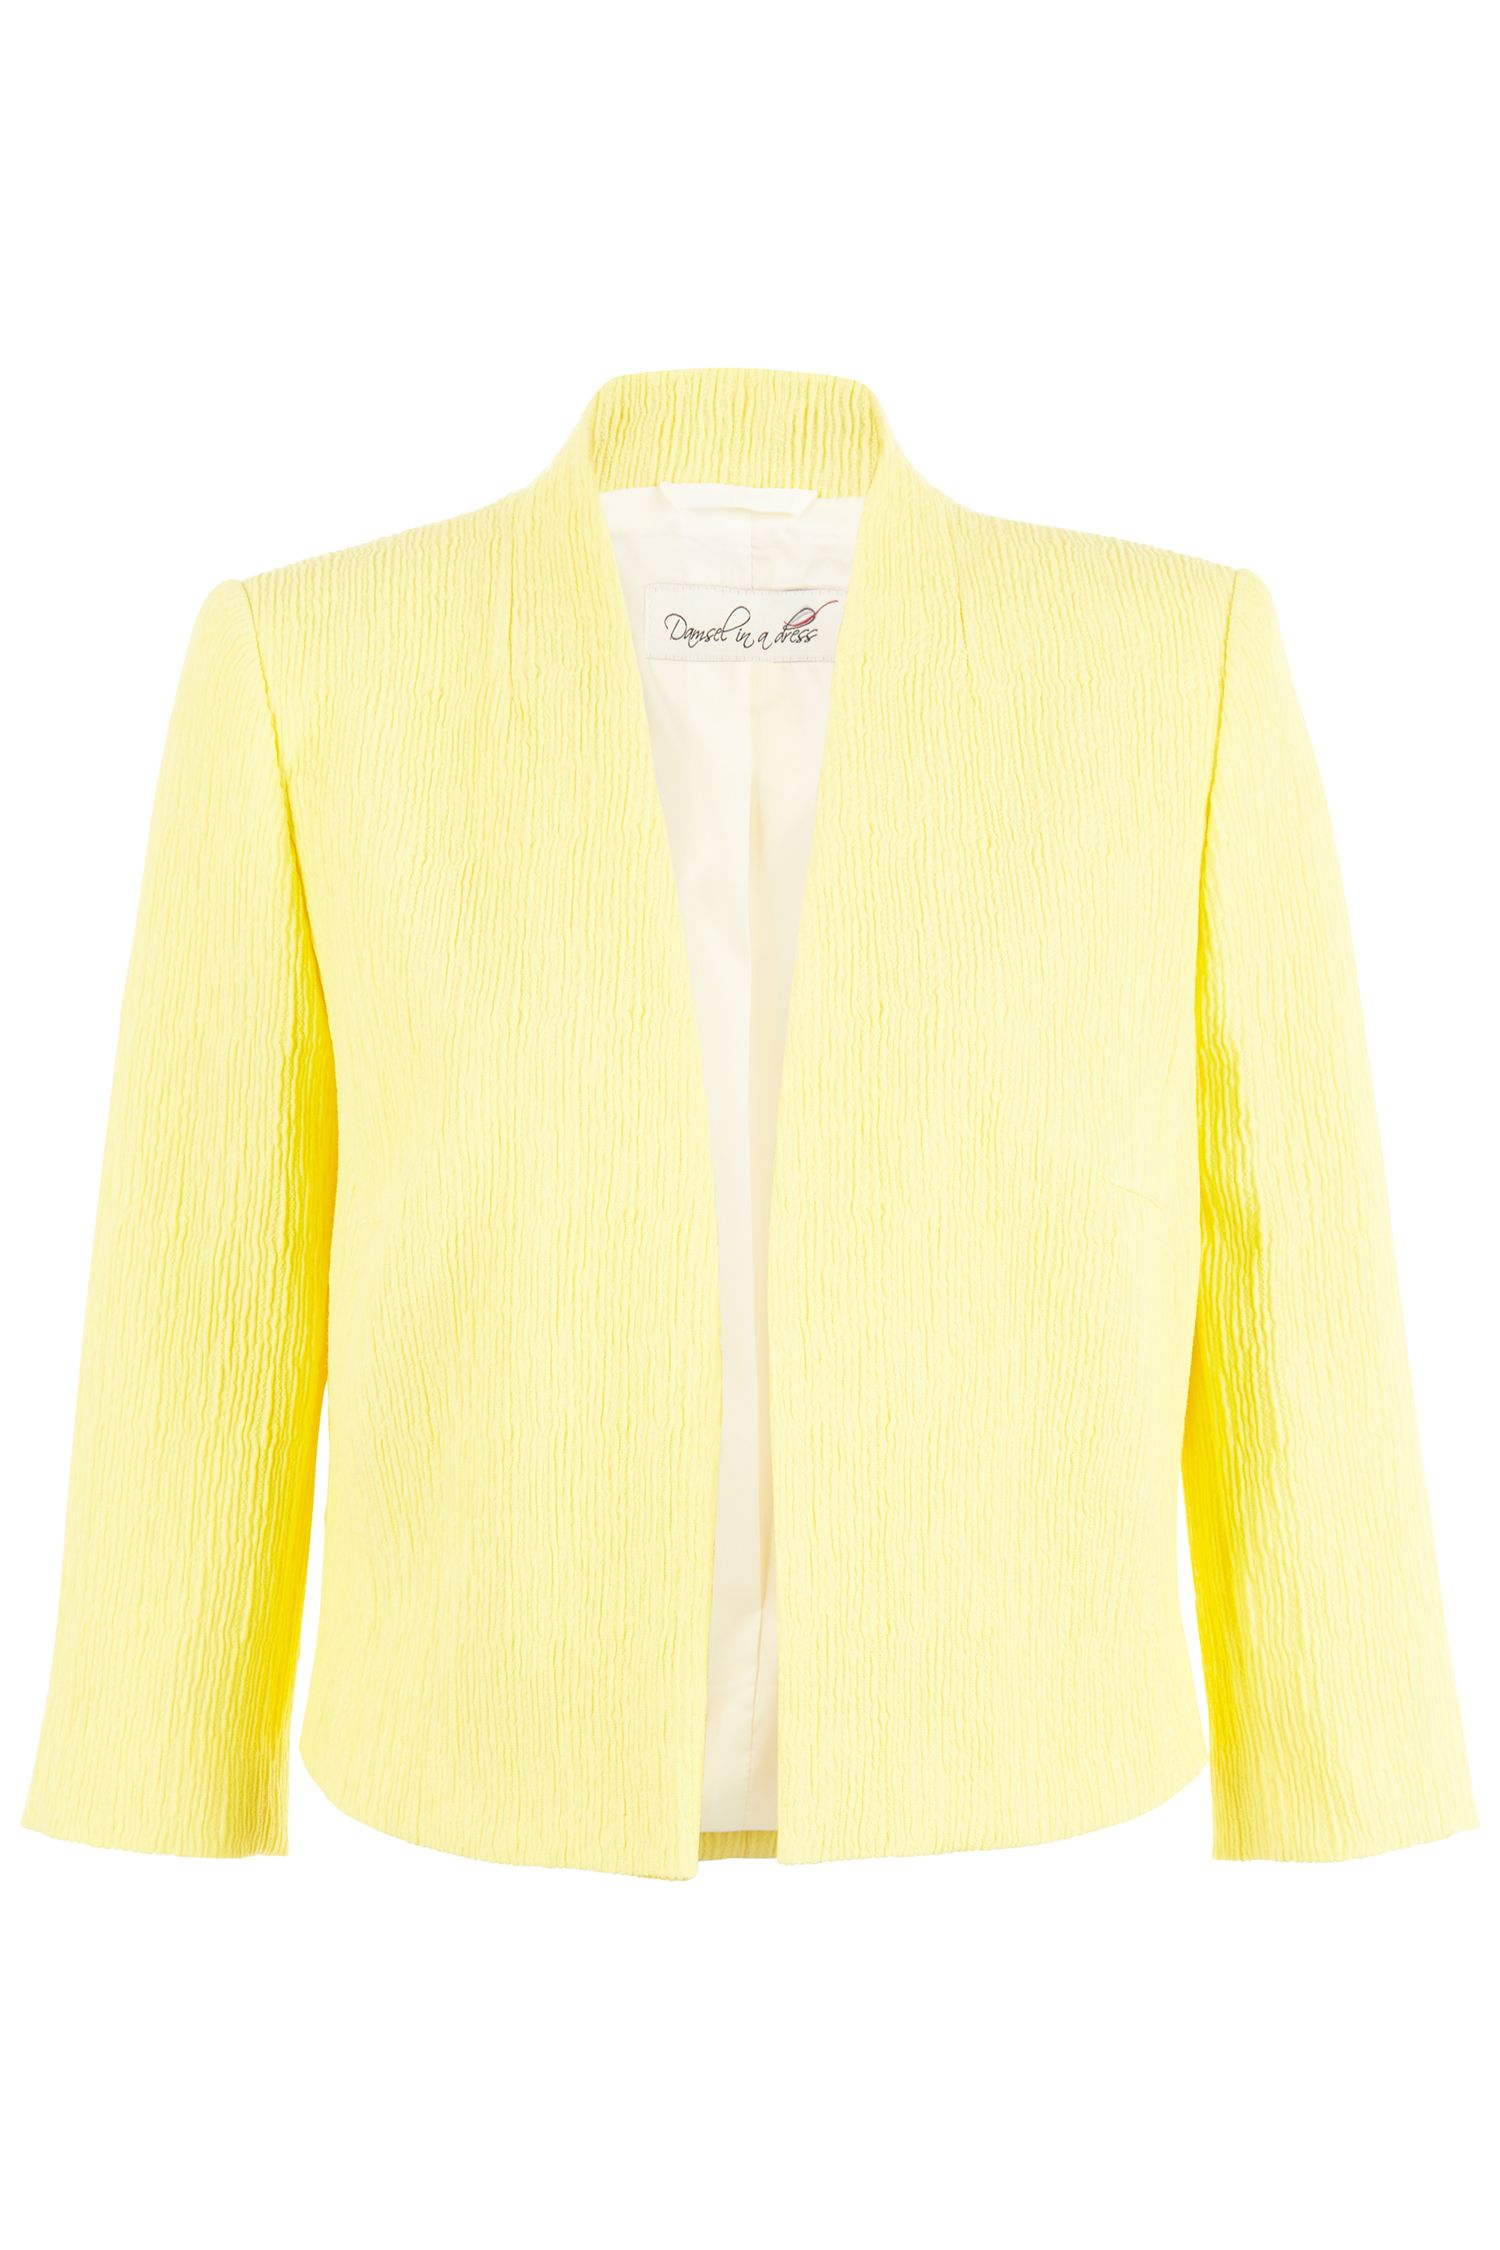 Damsel in a Dress Sjp Jacket, Yellow